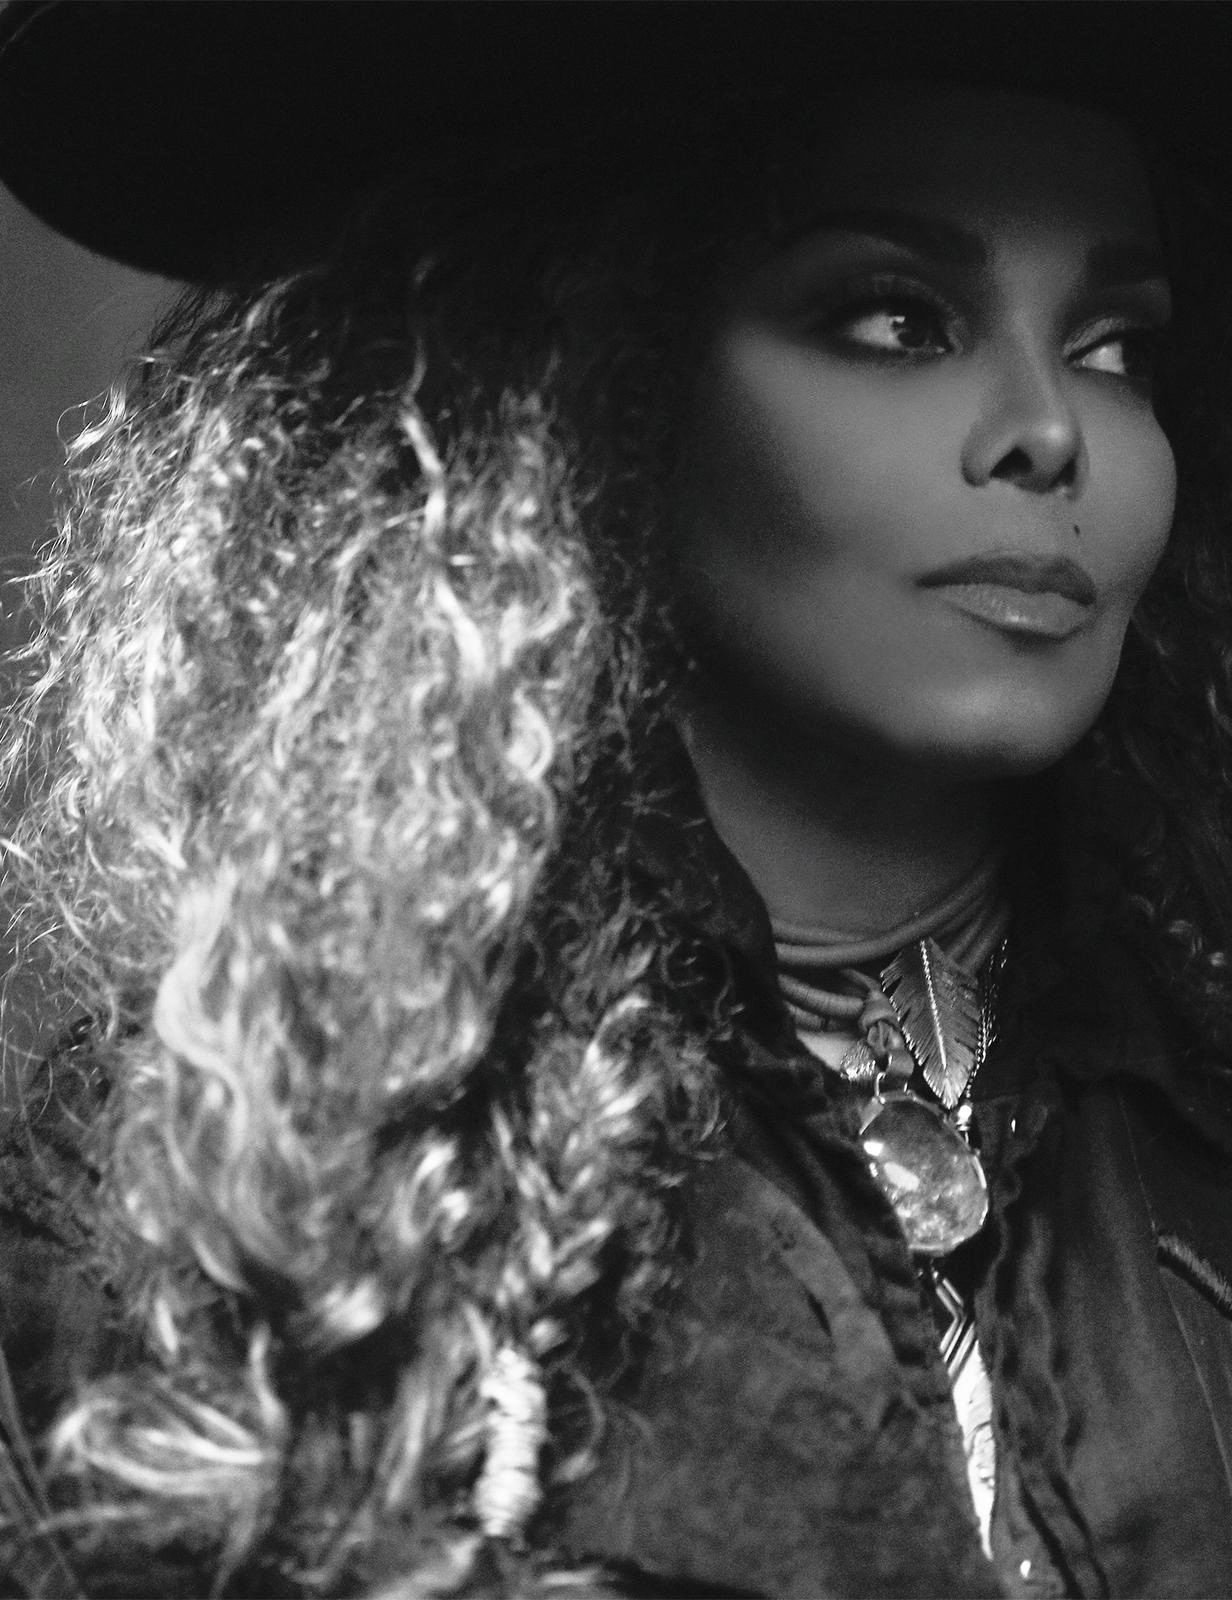 Happy Birthday Janet Jackson.  My best Wishes for you and your Family.